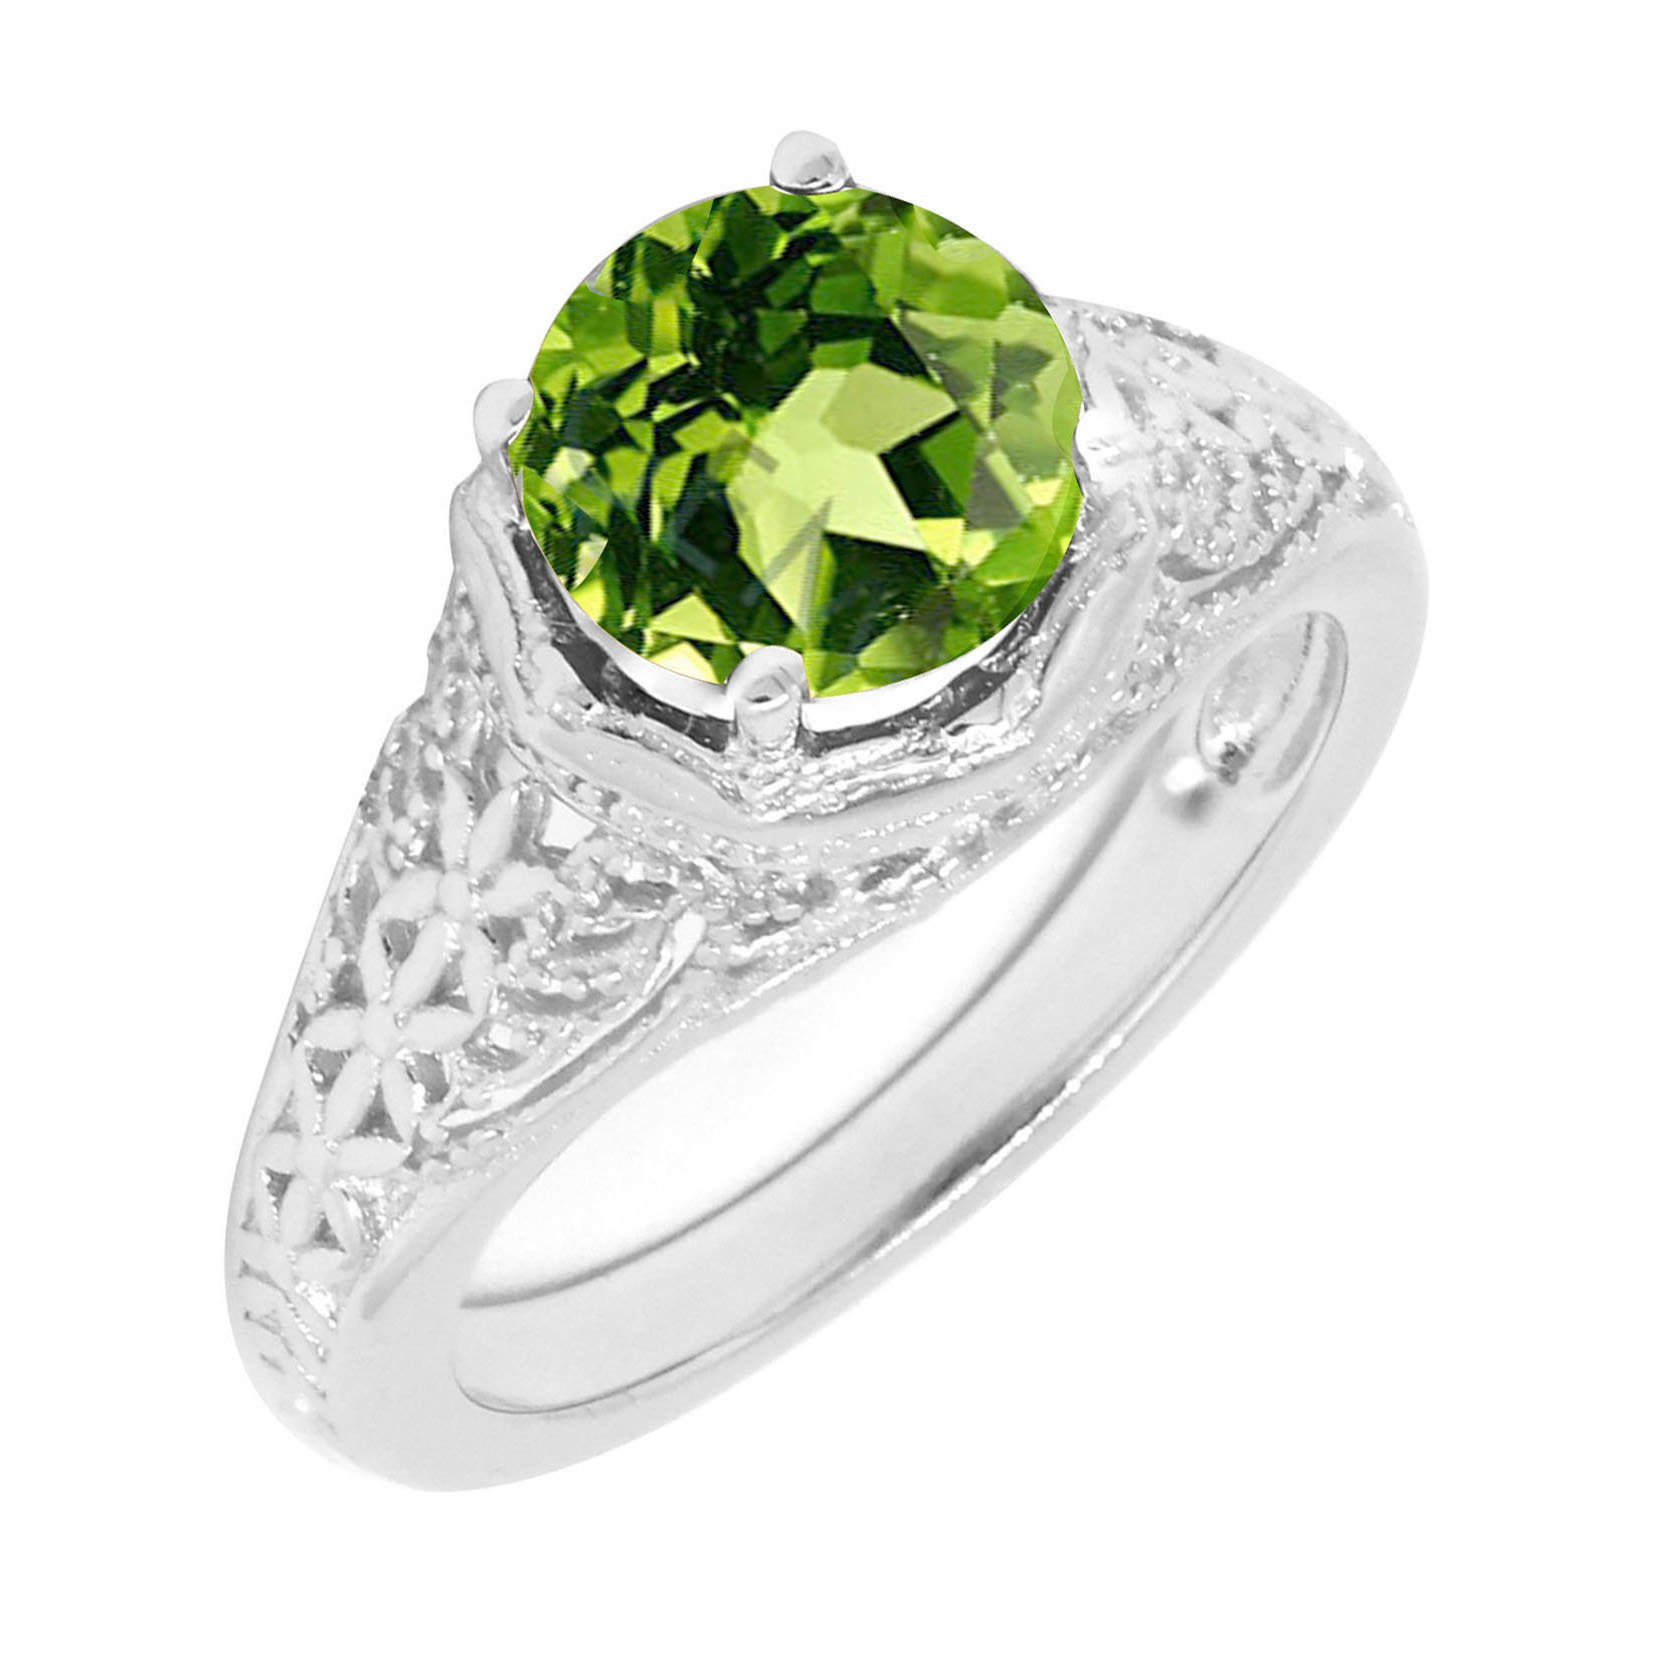 Filigree Sterling Silver Round Cut Natural Green Peridot Statement Ring (2 C.T.T.W)